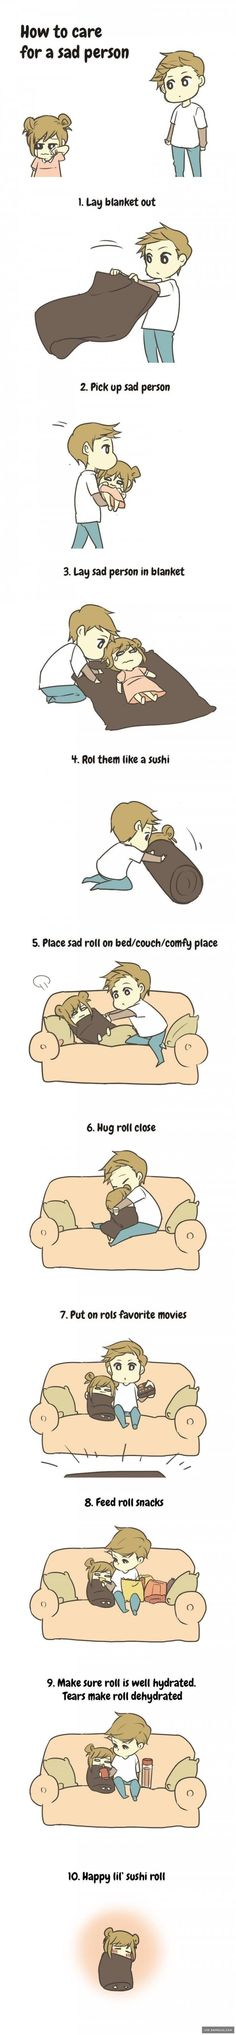 How To Care For A Sad Person - The Best Funny Pictures